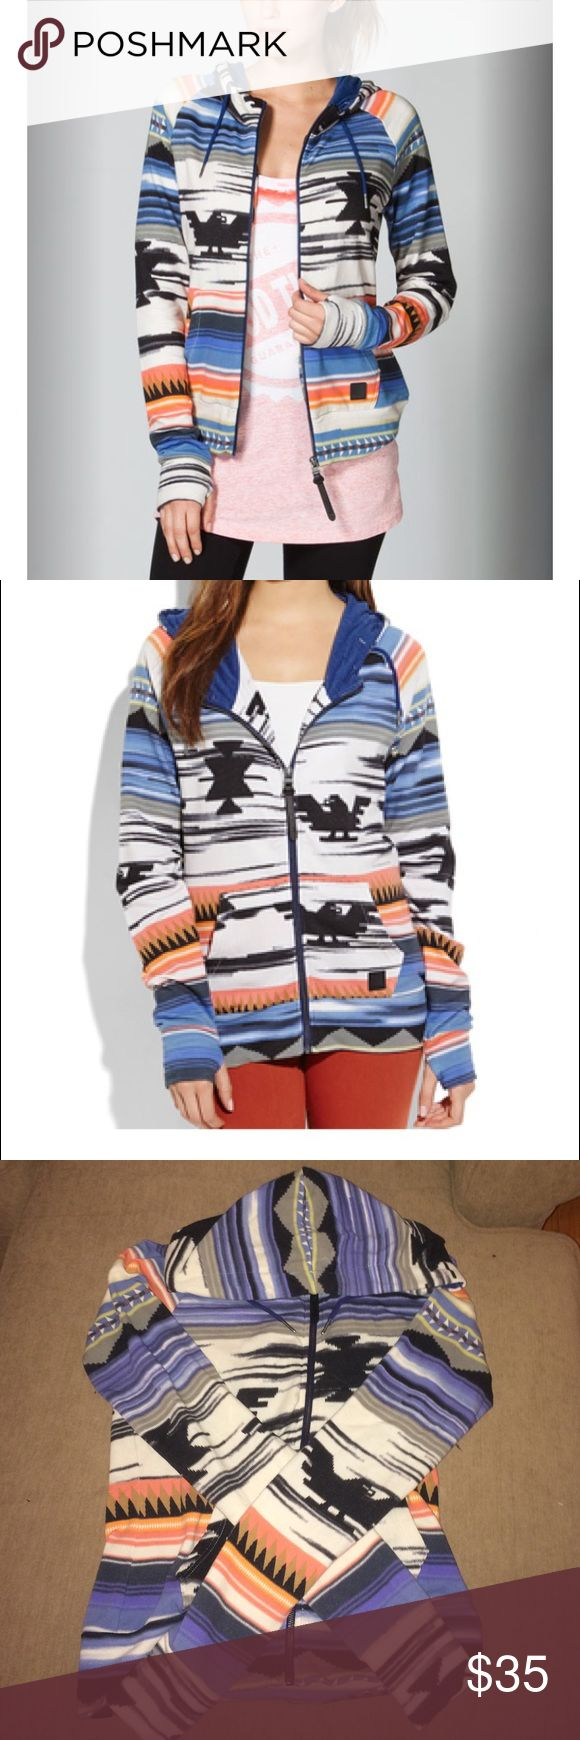 ❣️BOGO❣️ Aztec Zip Up Hoodie BUY THIS ITEM ⭐️ GET ANY $8 ITEM FOR FREE  .         Size S. In good used condition, comfortable and breathable, with thumb holes. Some minor pilling and wear. Bench Brand zip up. Branded for views Urban Outfitters Tops Sweatshirts & Hoodies